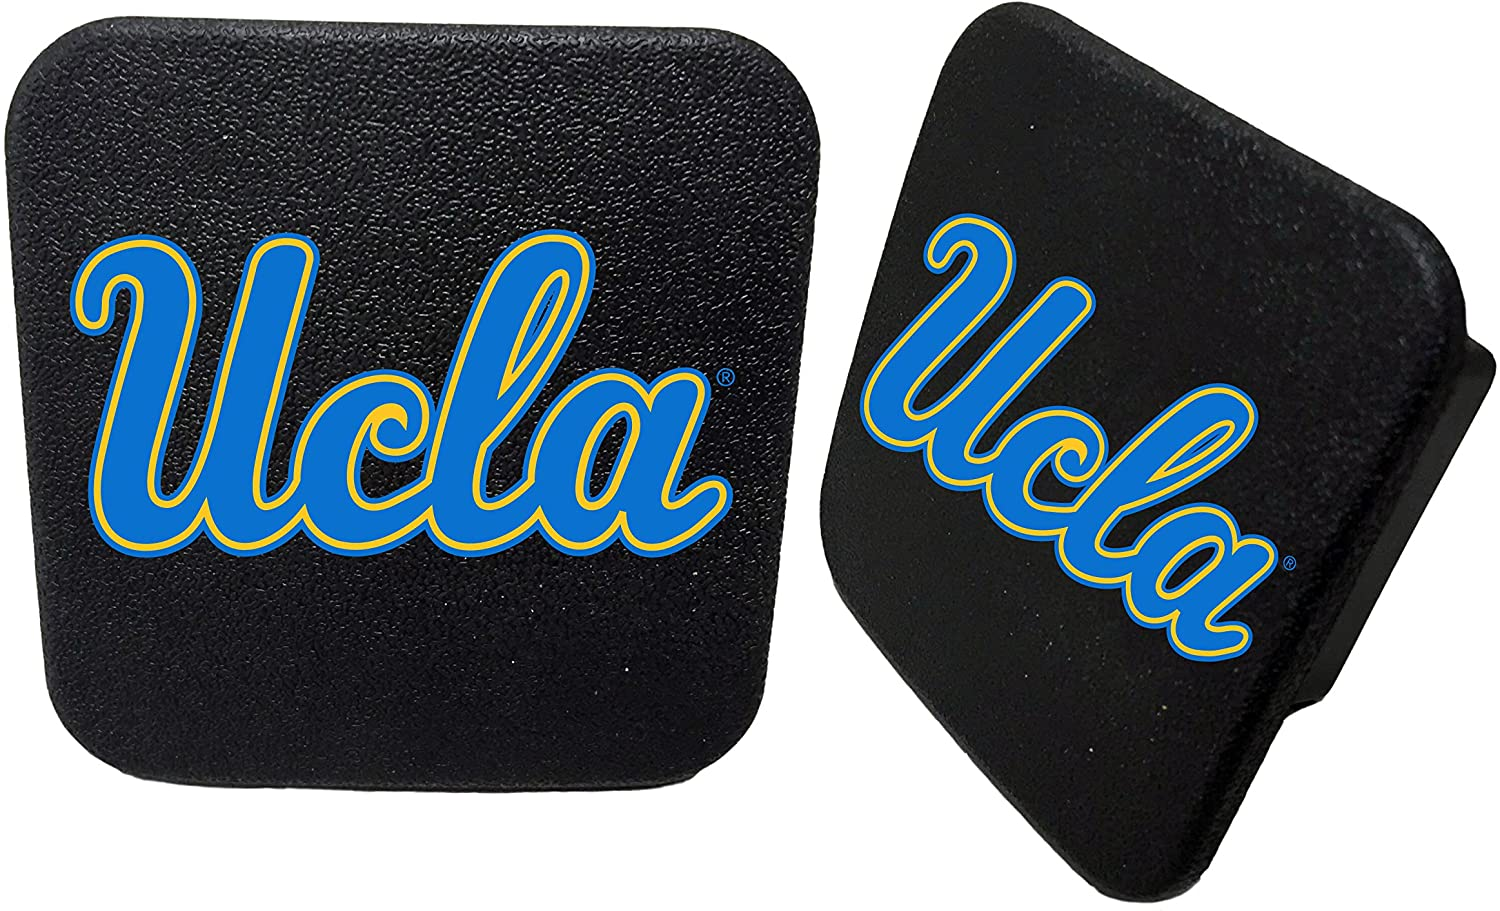 University of California Los Angeles Rubber Trailer Hitch Cover